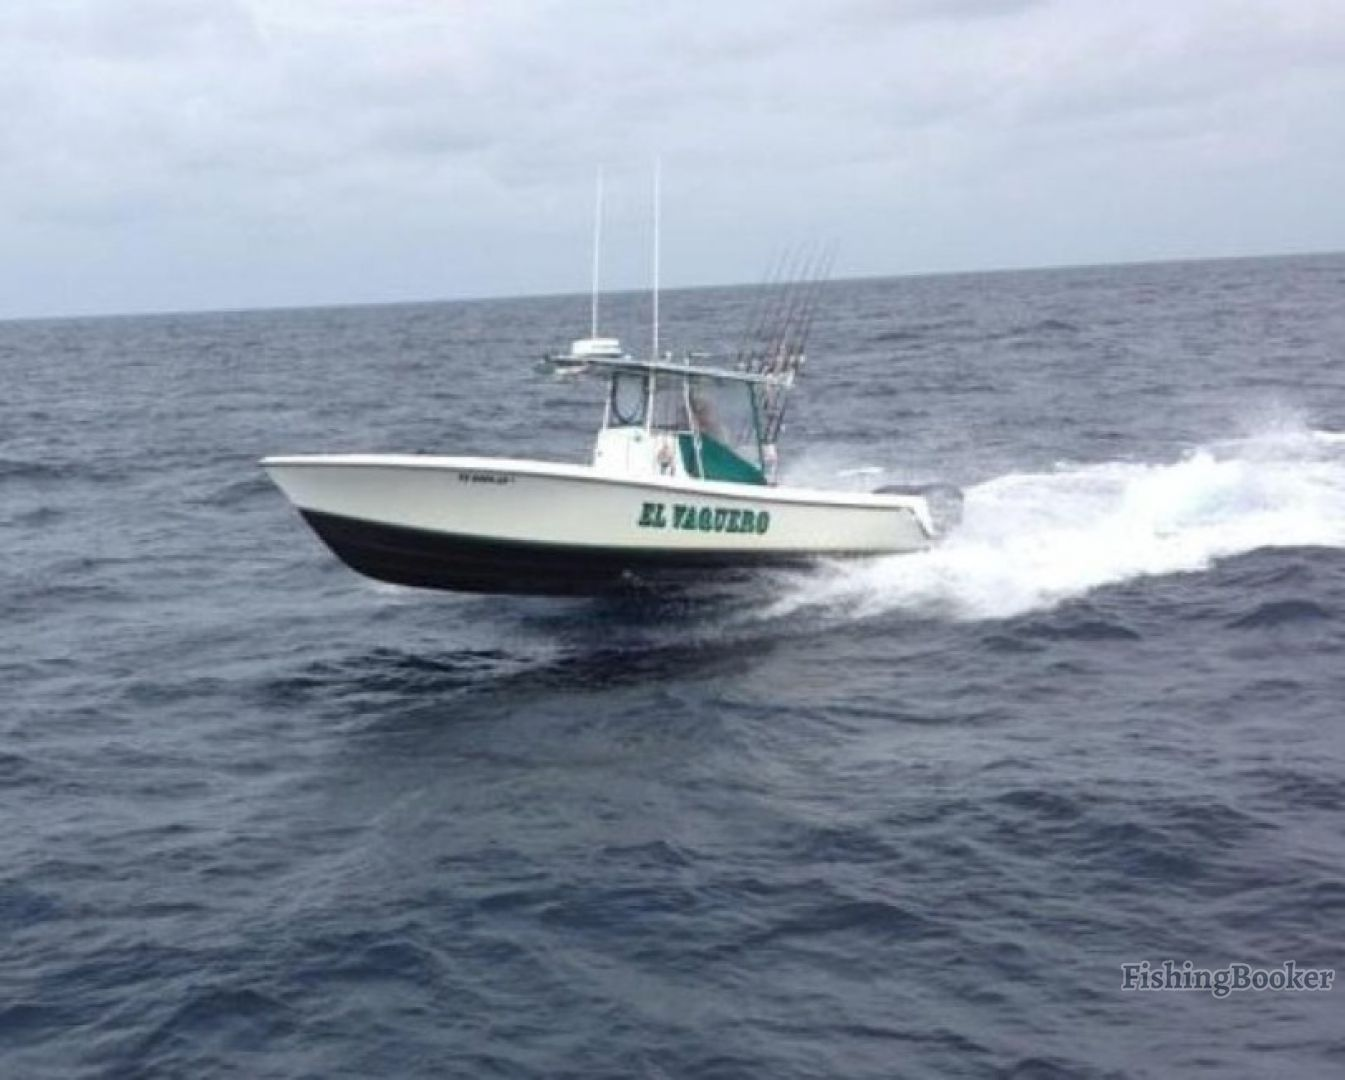 Cowboy charters contender freeport texas for Freeport texas fishing charters